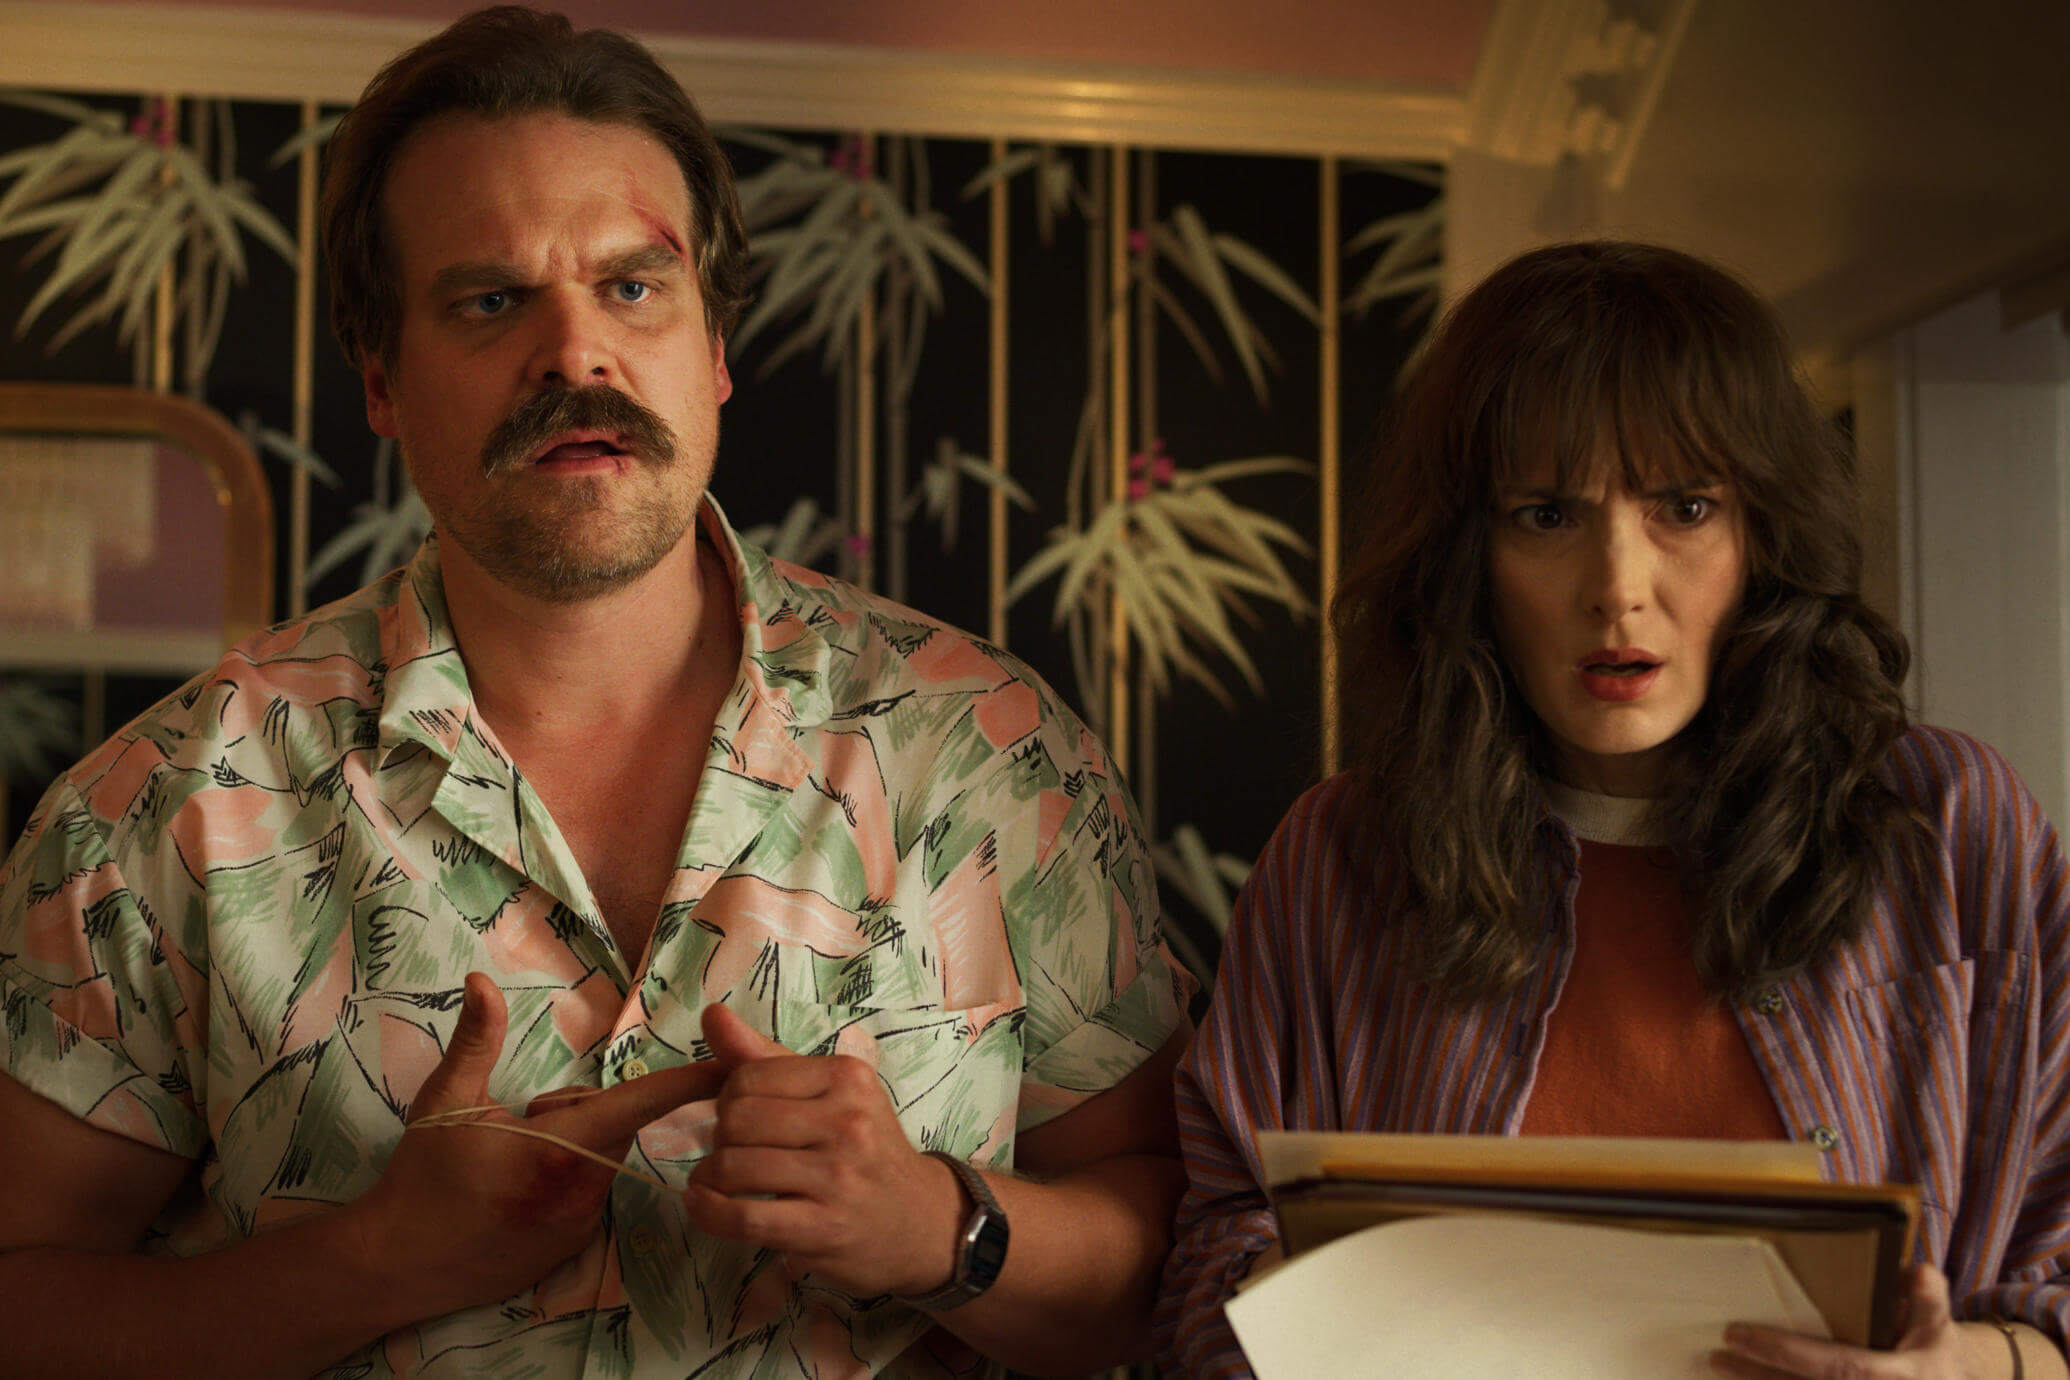 Joyce and Hopper are teamed up together to solve a mystery in Stranger Things 3.